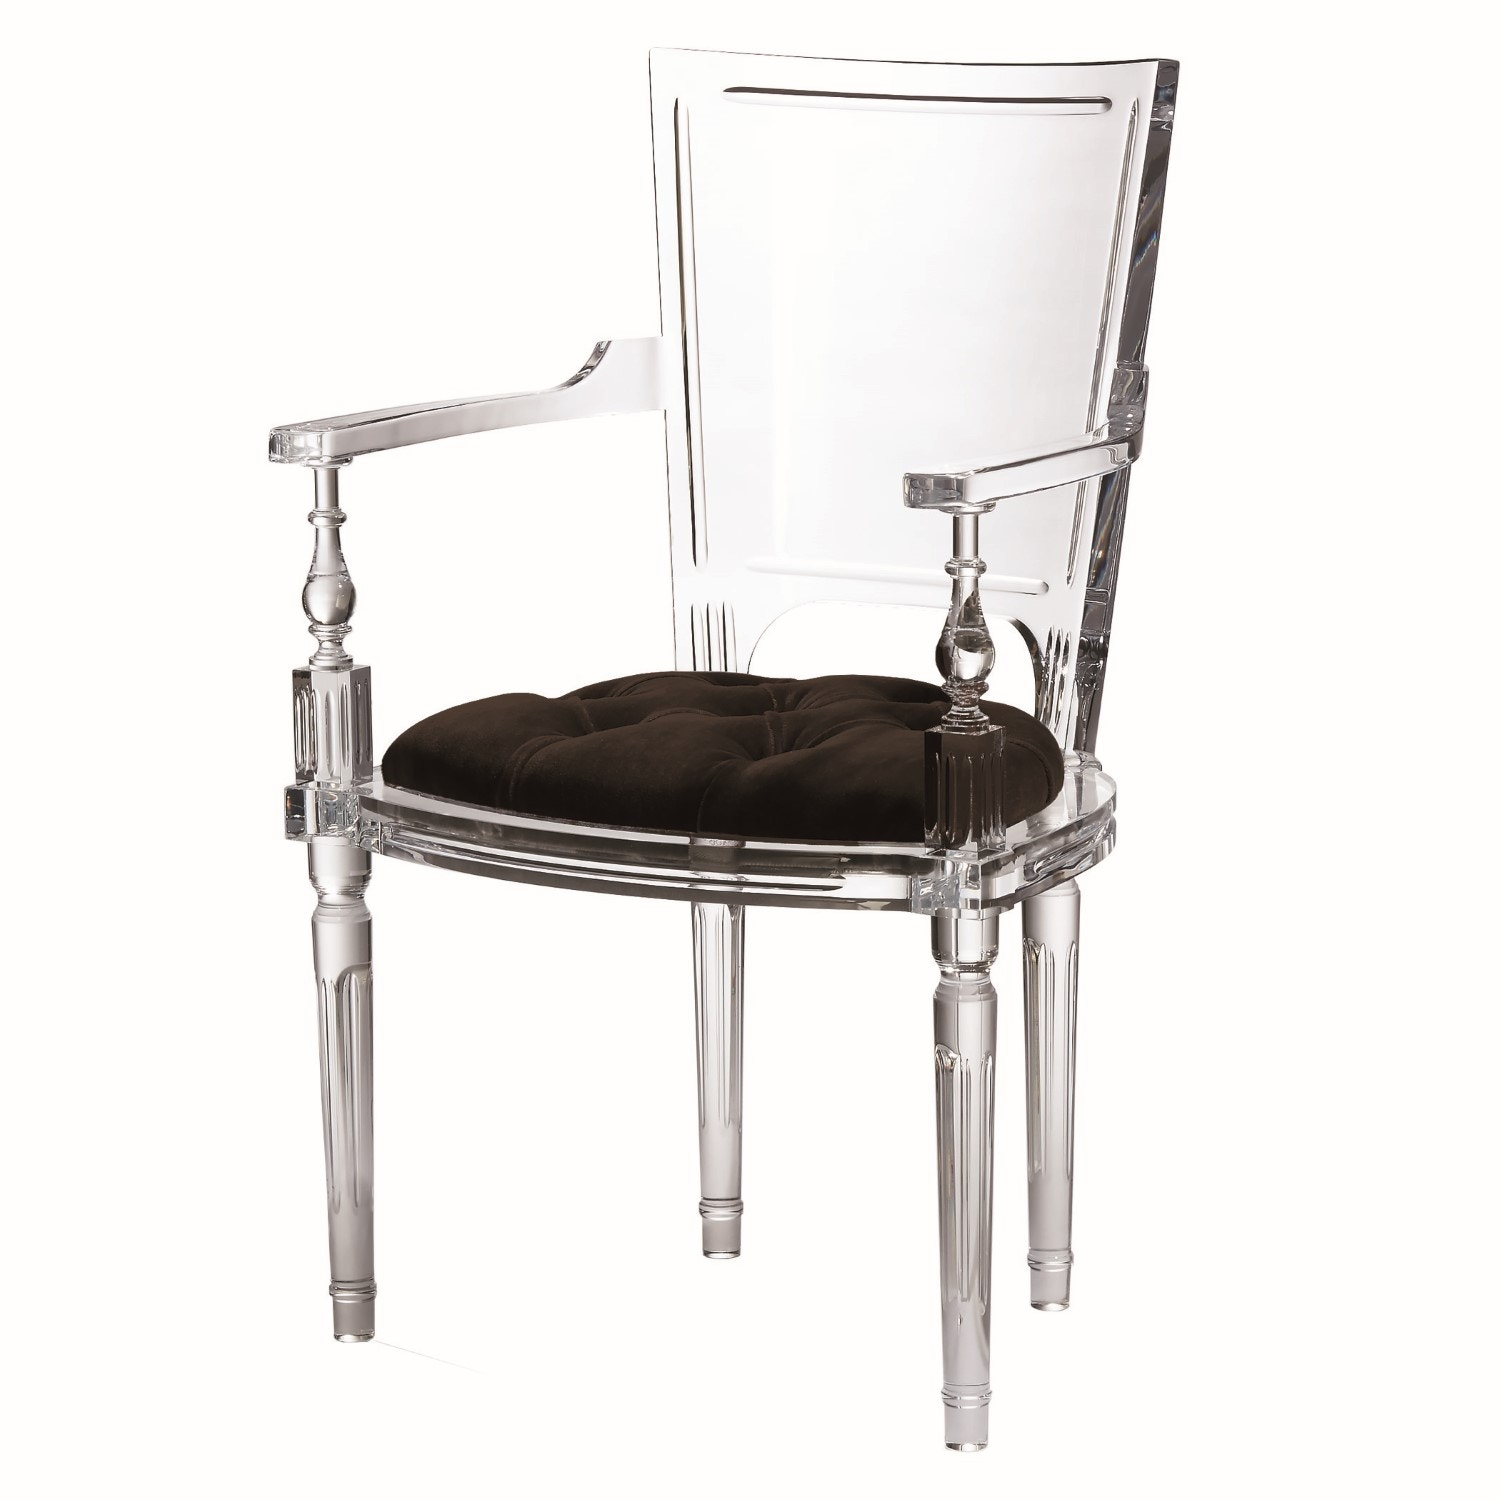 Merveilleux Global Views Marilyn Acrylic Arm Chair Black 3.31247